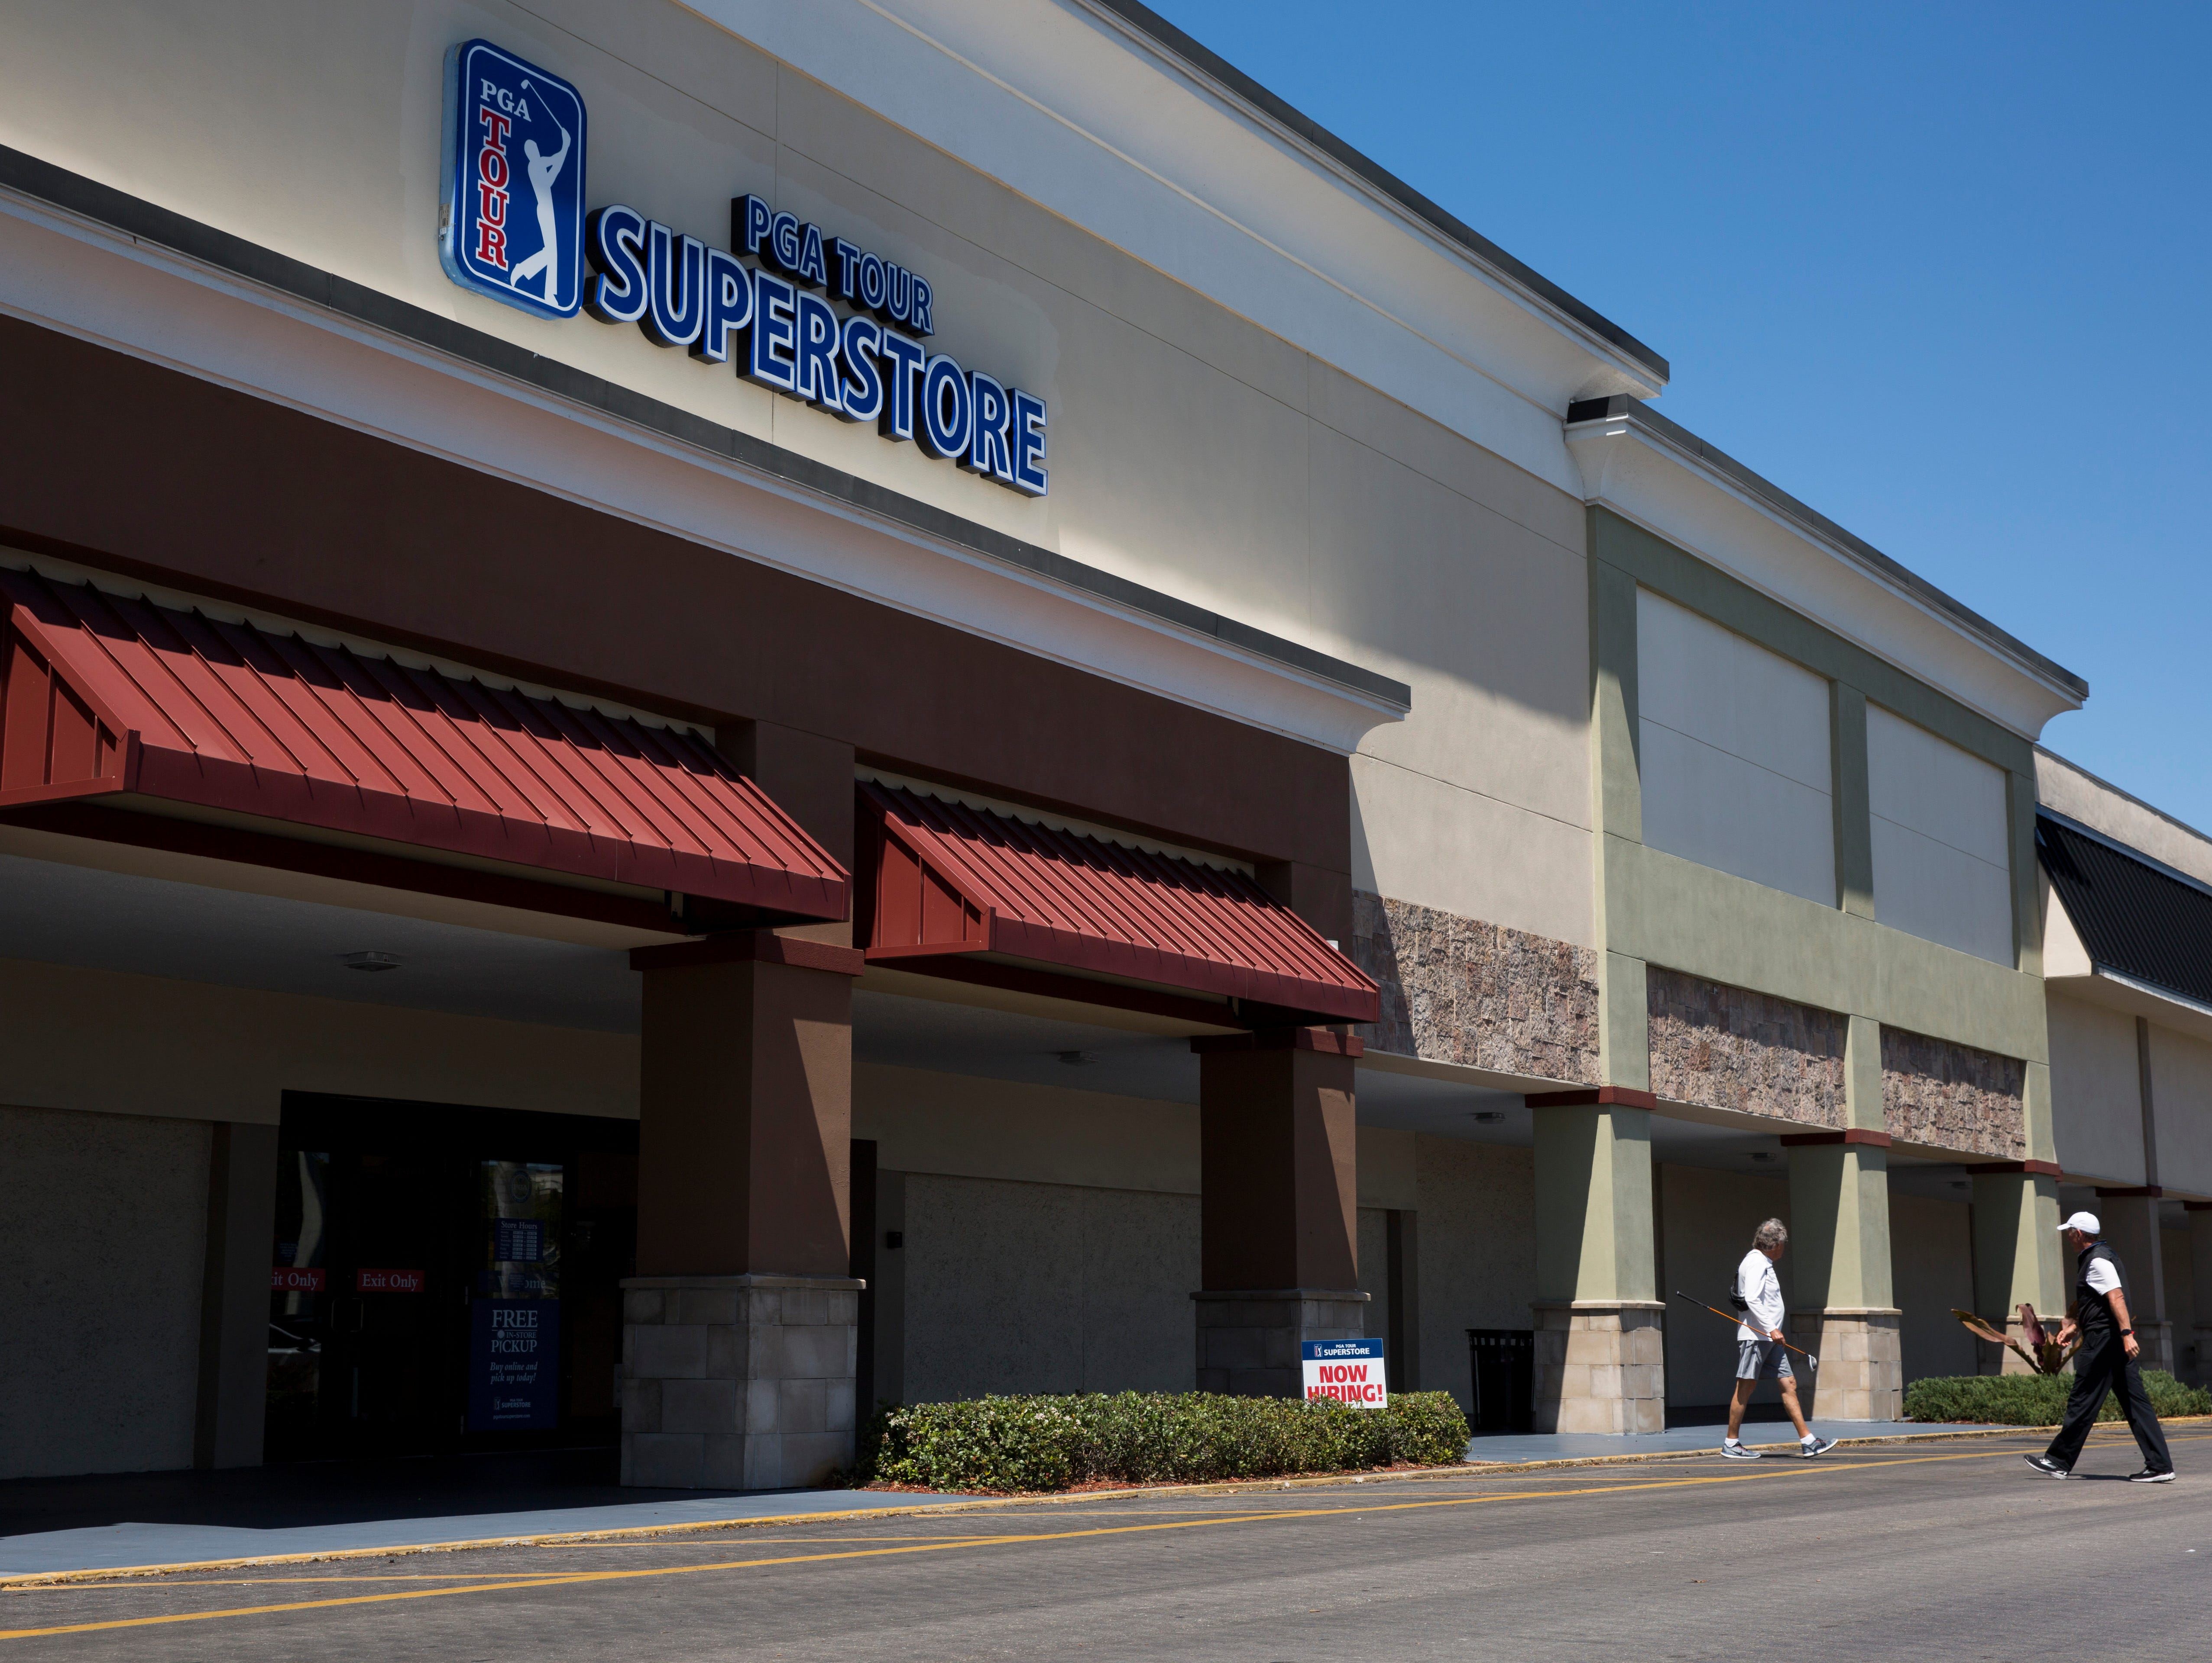 naples site busy as pga tour superstore chain outlasts